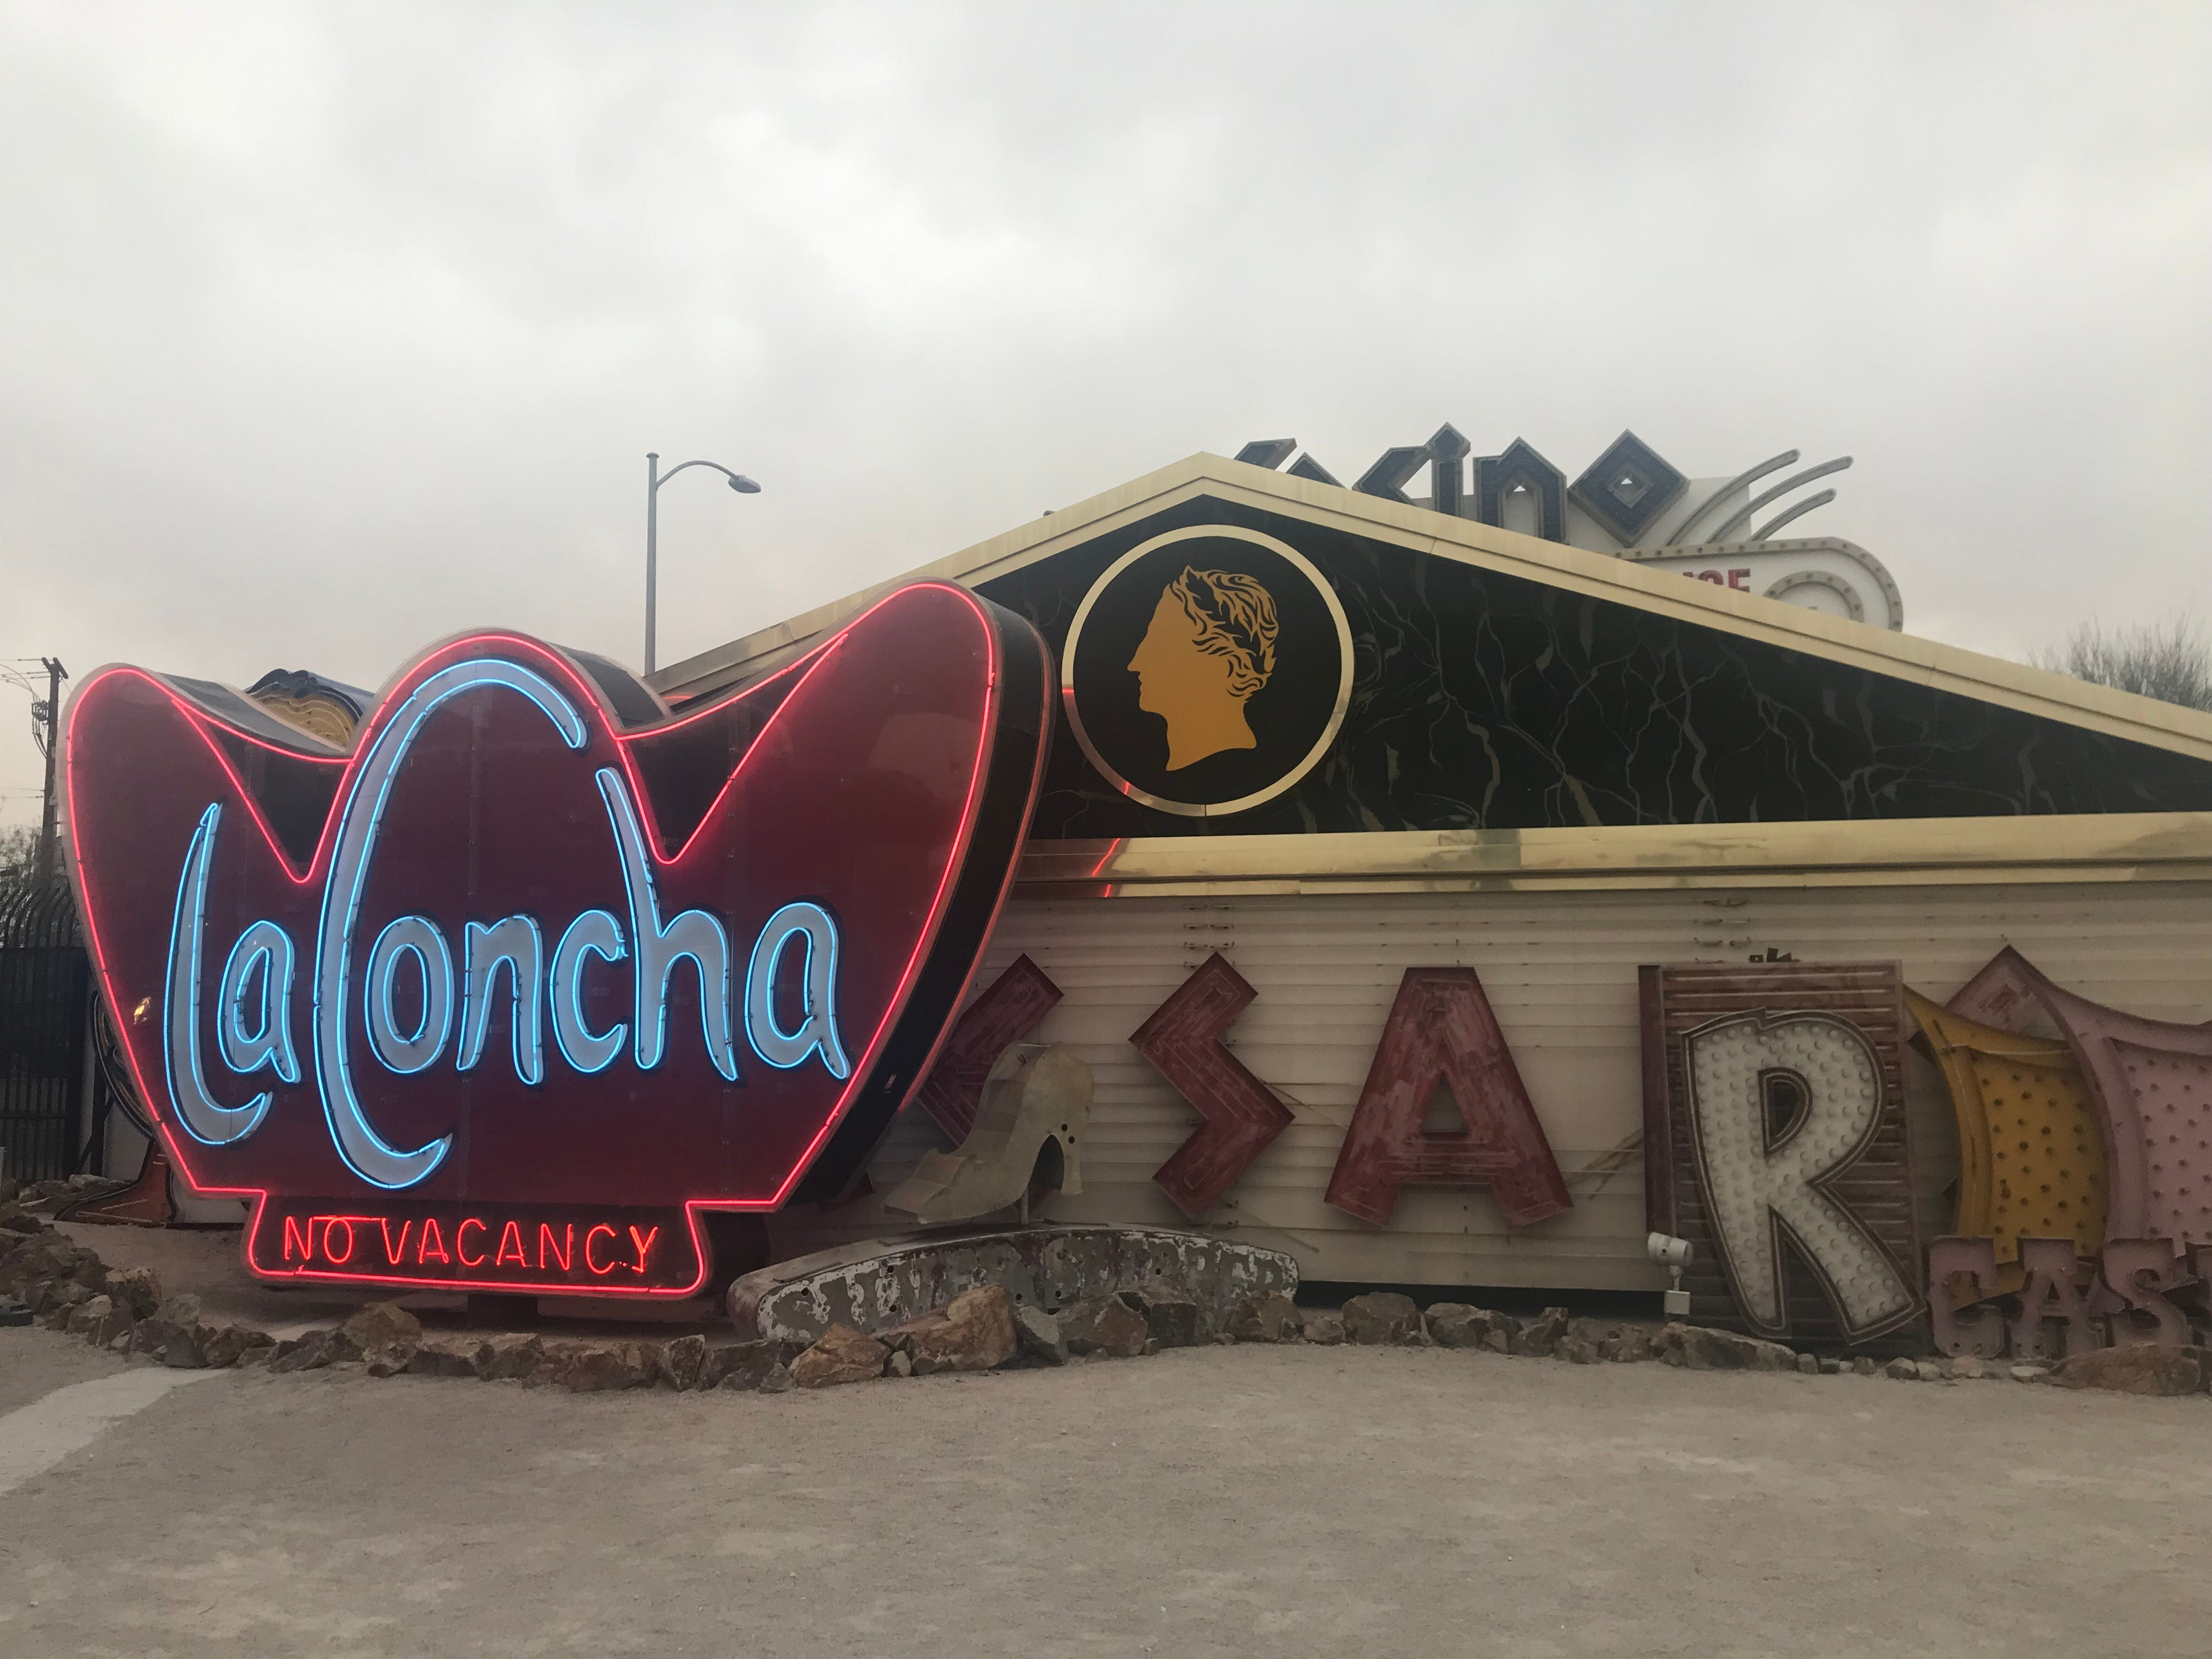 A lit-up sign from the La Concha Motel sits against an old Caesars Palace sign at the Neon Museum.